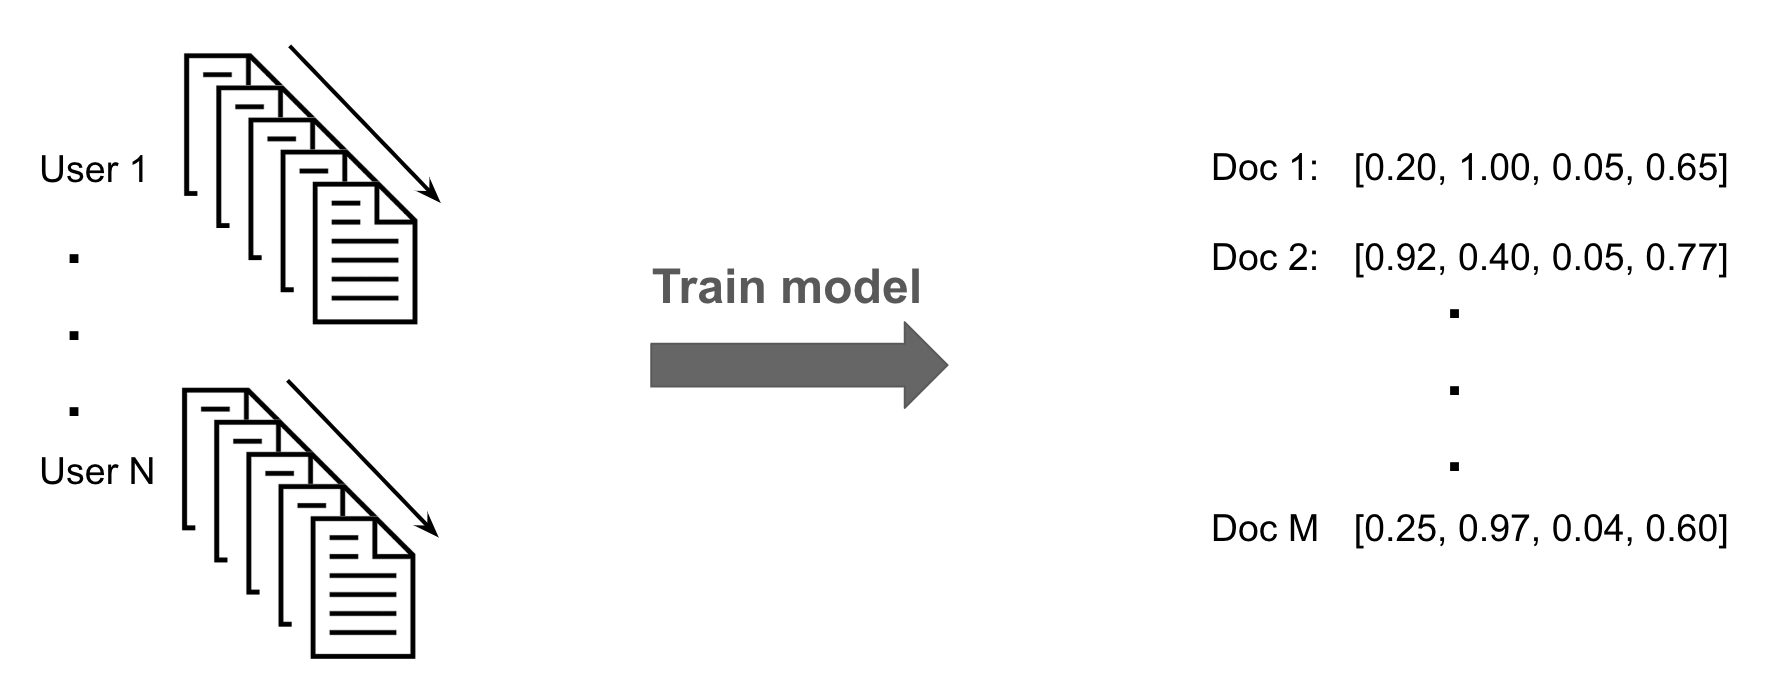 Schematic representation of our approach: reading sequences are used to create vector representations for user uploaded documents. The vector dimension shown is merely illustrative.